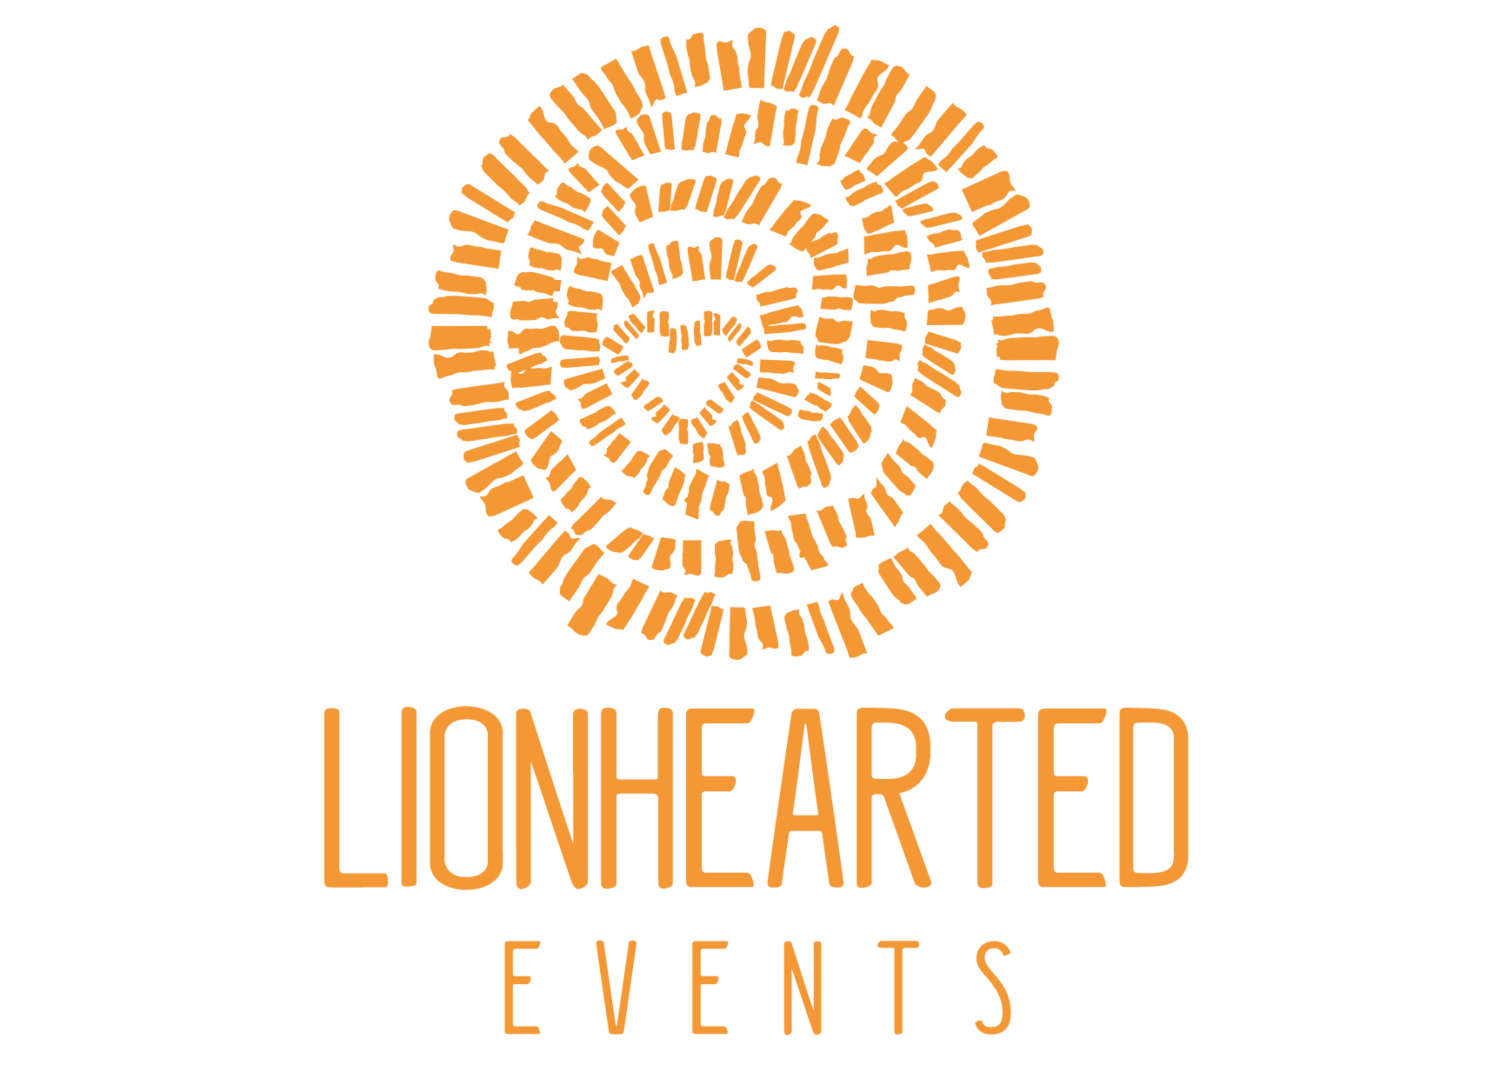 LIONHEARTED EVENTS